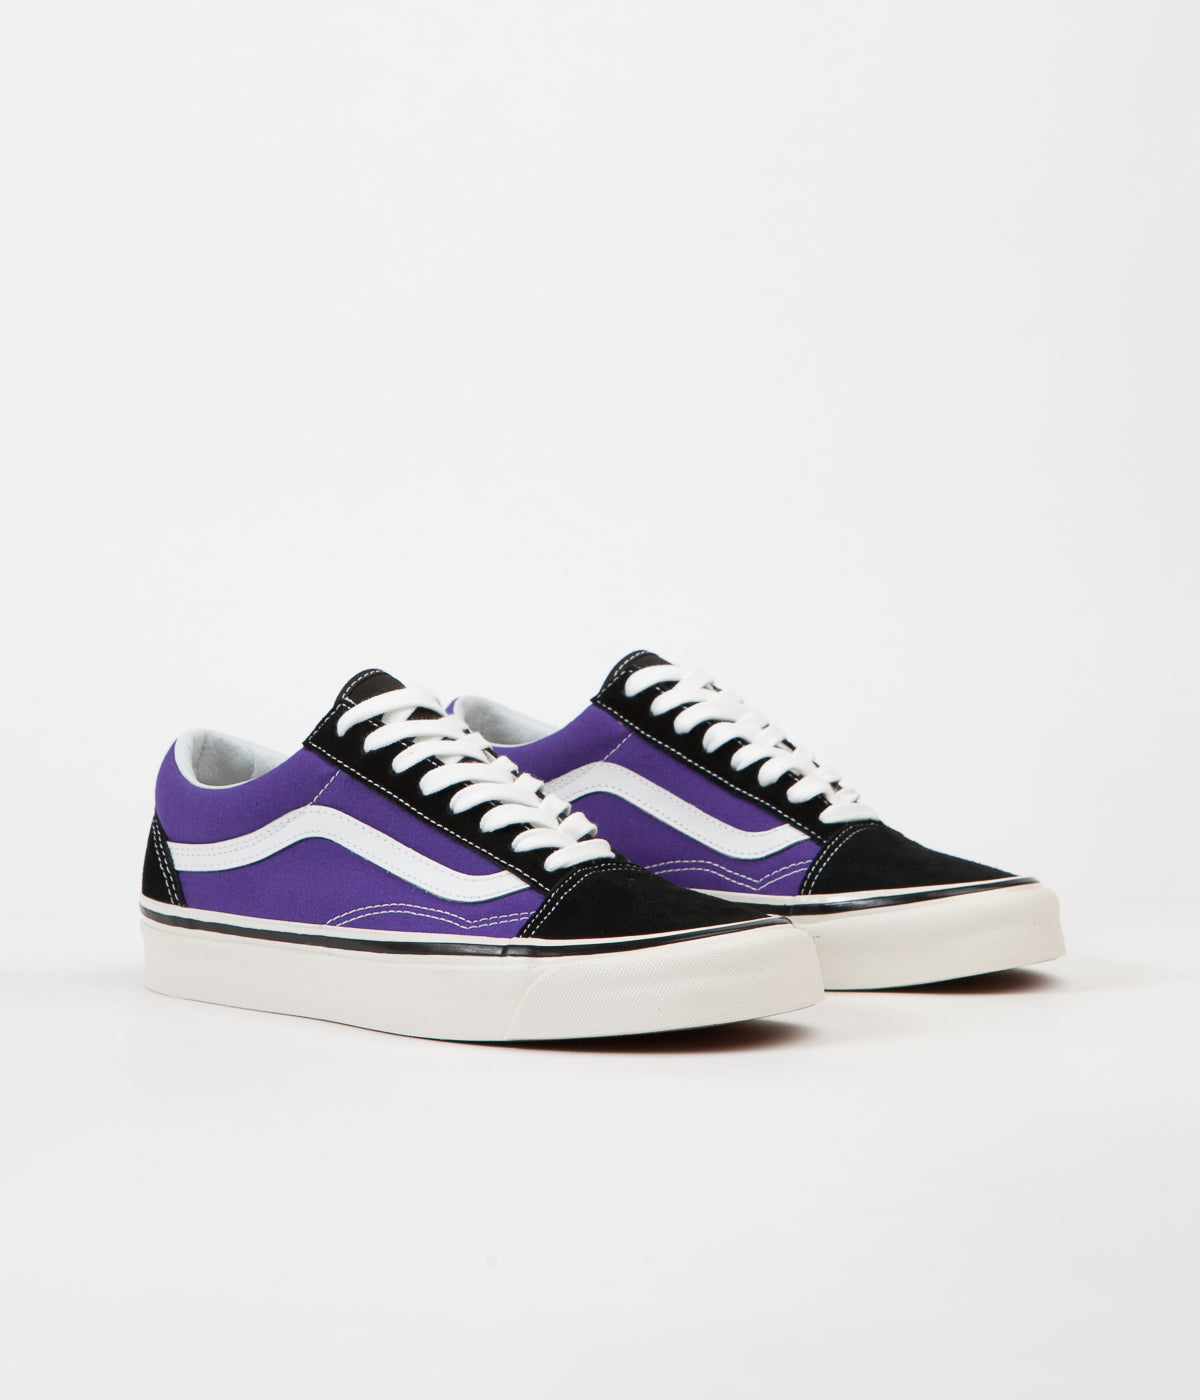 6a4b7949dcf282 vans old skool 36 dx anaheim factory